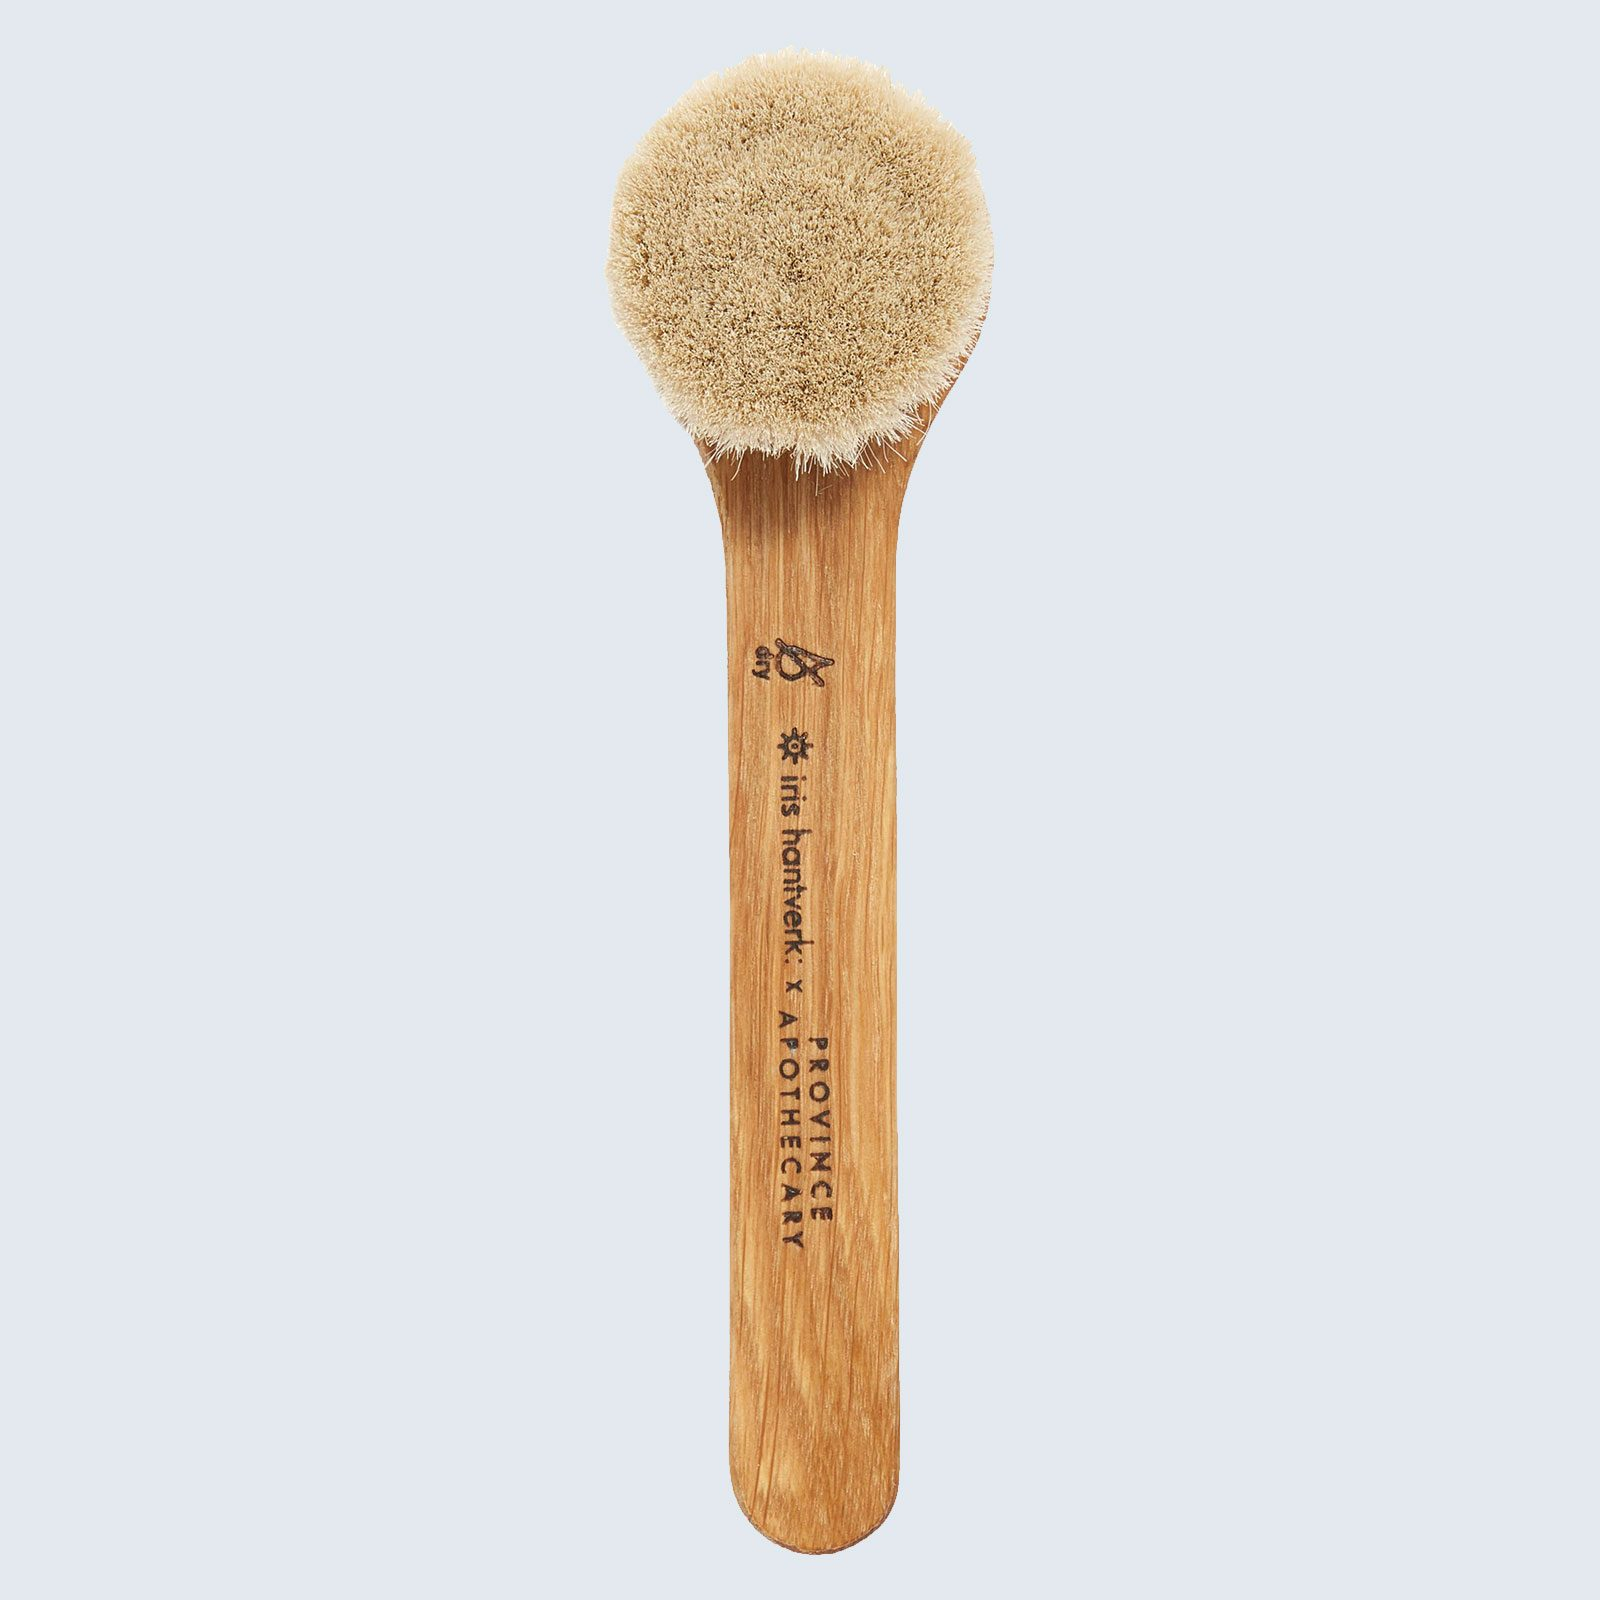 Province Apothecary Facial Dry Brush